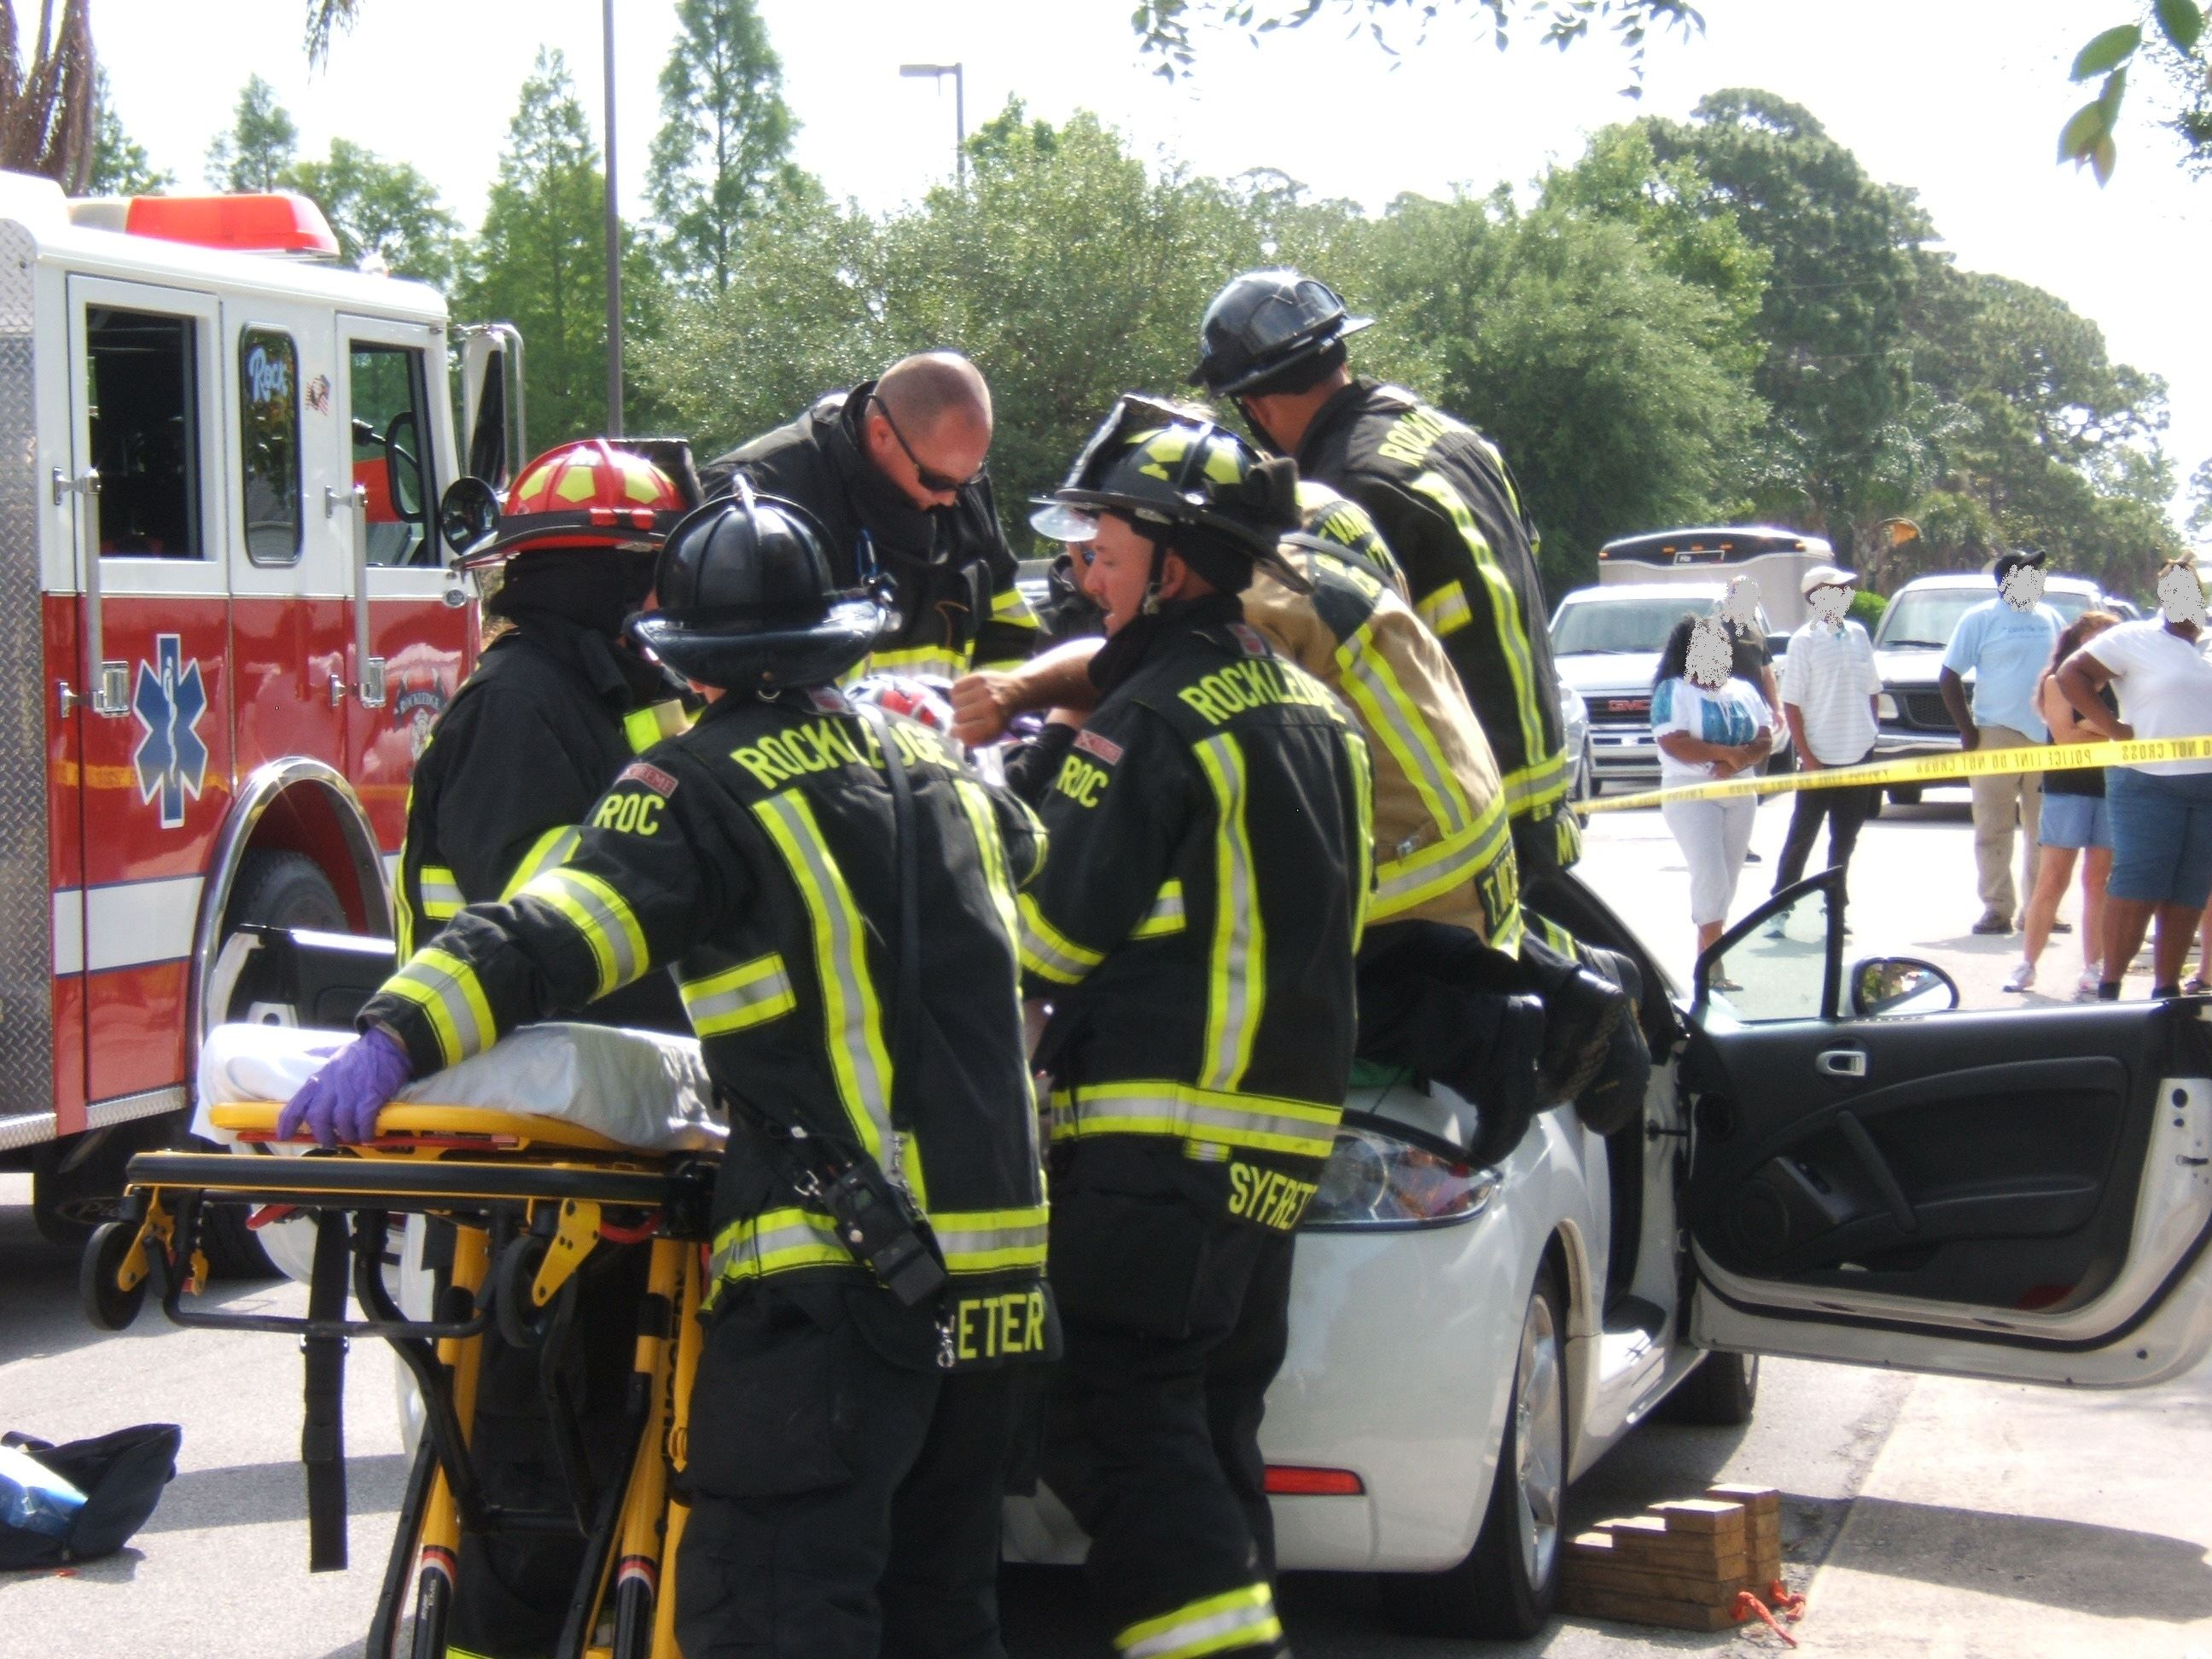 Firefighters carrying a stretcher